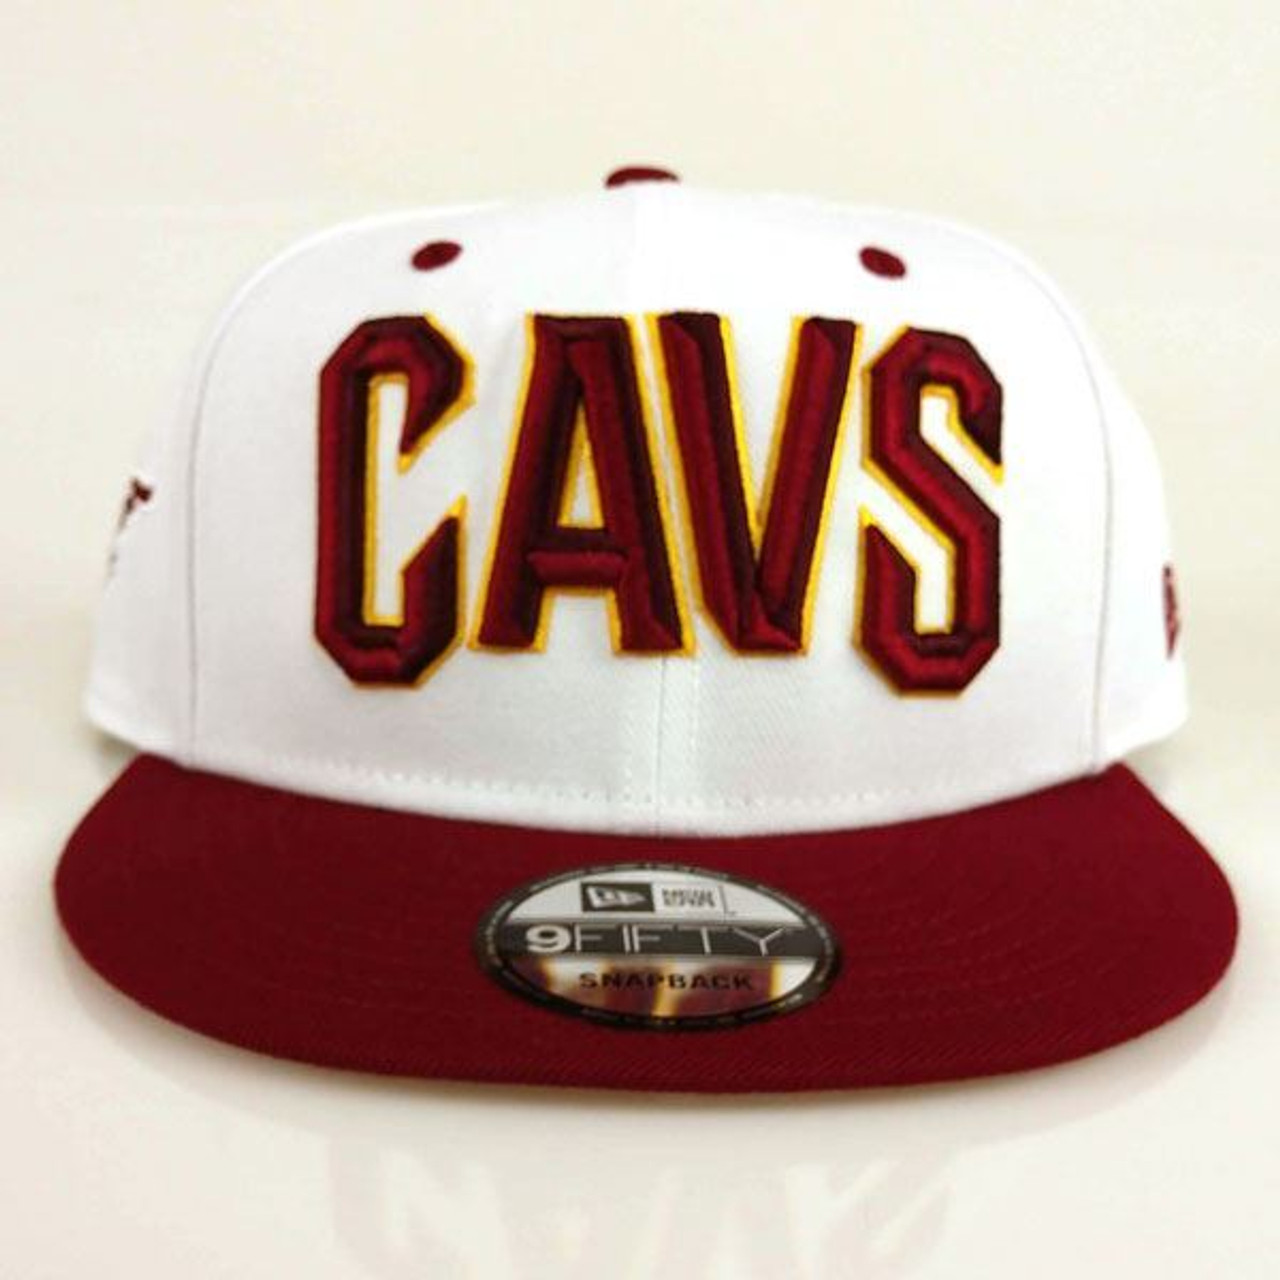 331e77406be Cavs Association Snapback Hat - Cleveland Cavaliers